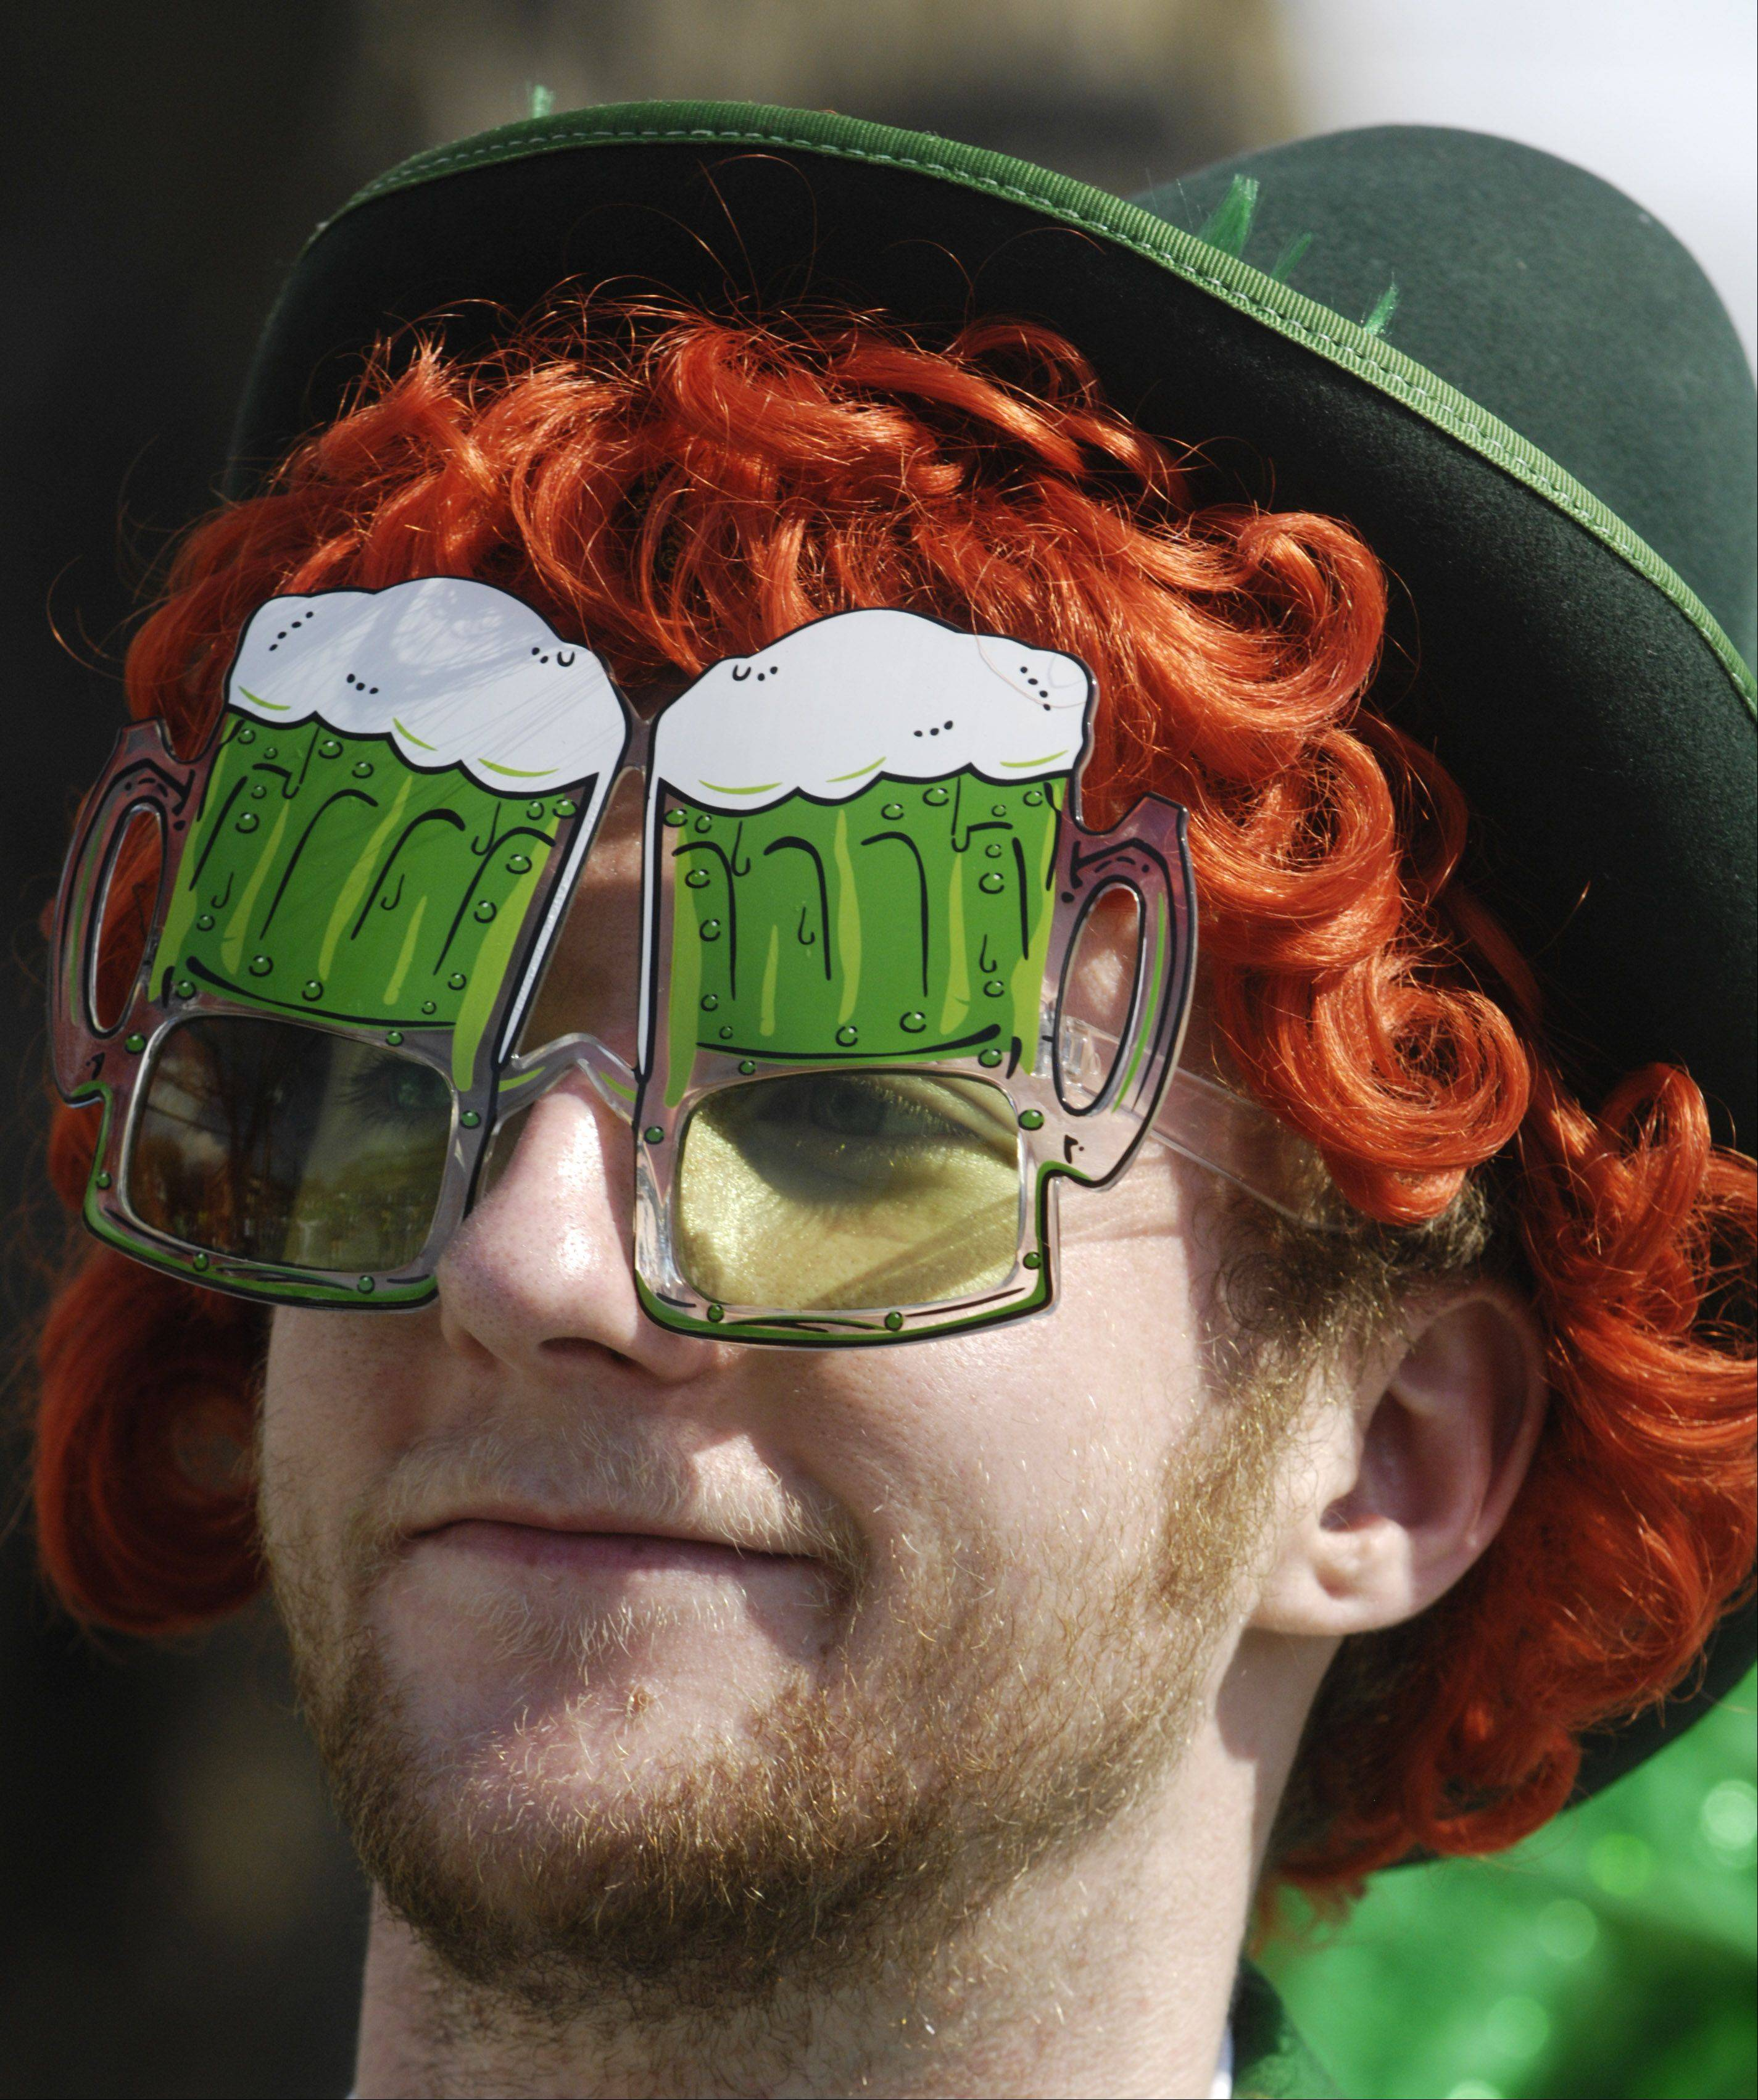 Ethan Simpson got into the St. Patrick's Day spirit last year as he rode in the Bauer's Brauhaus car during the Palatine parade.